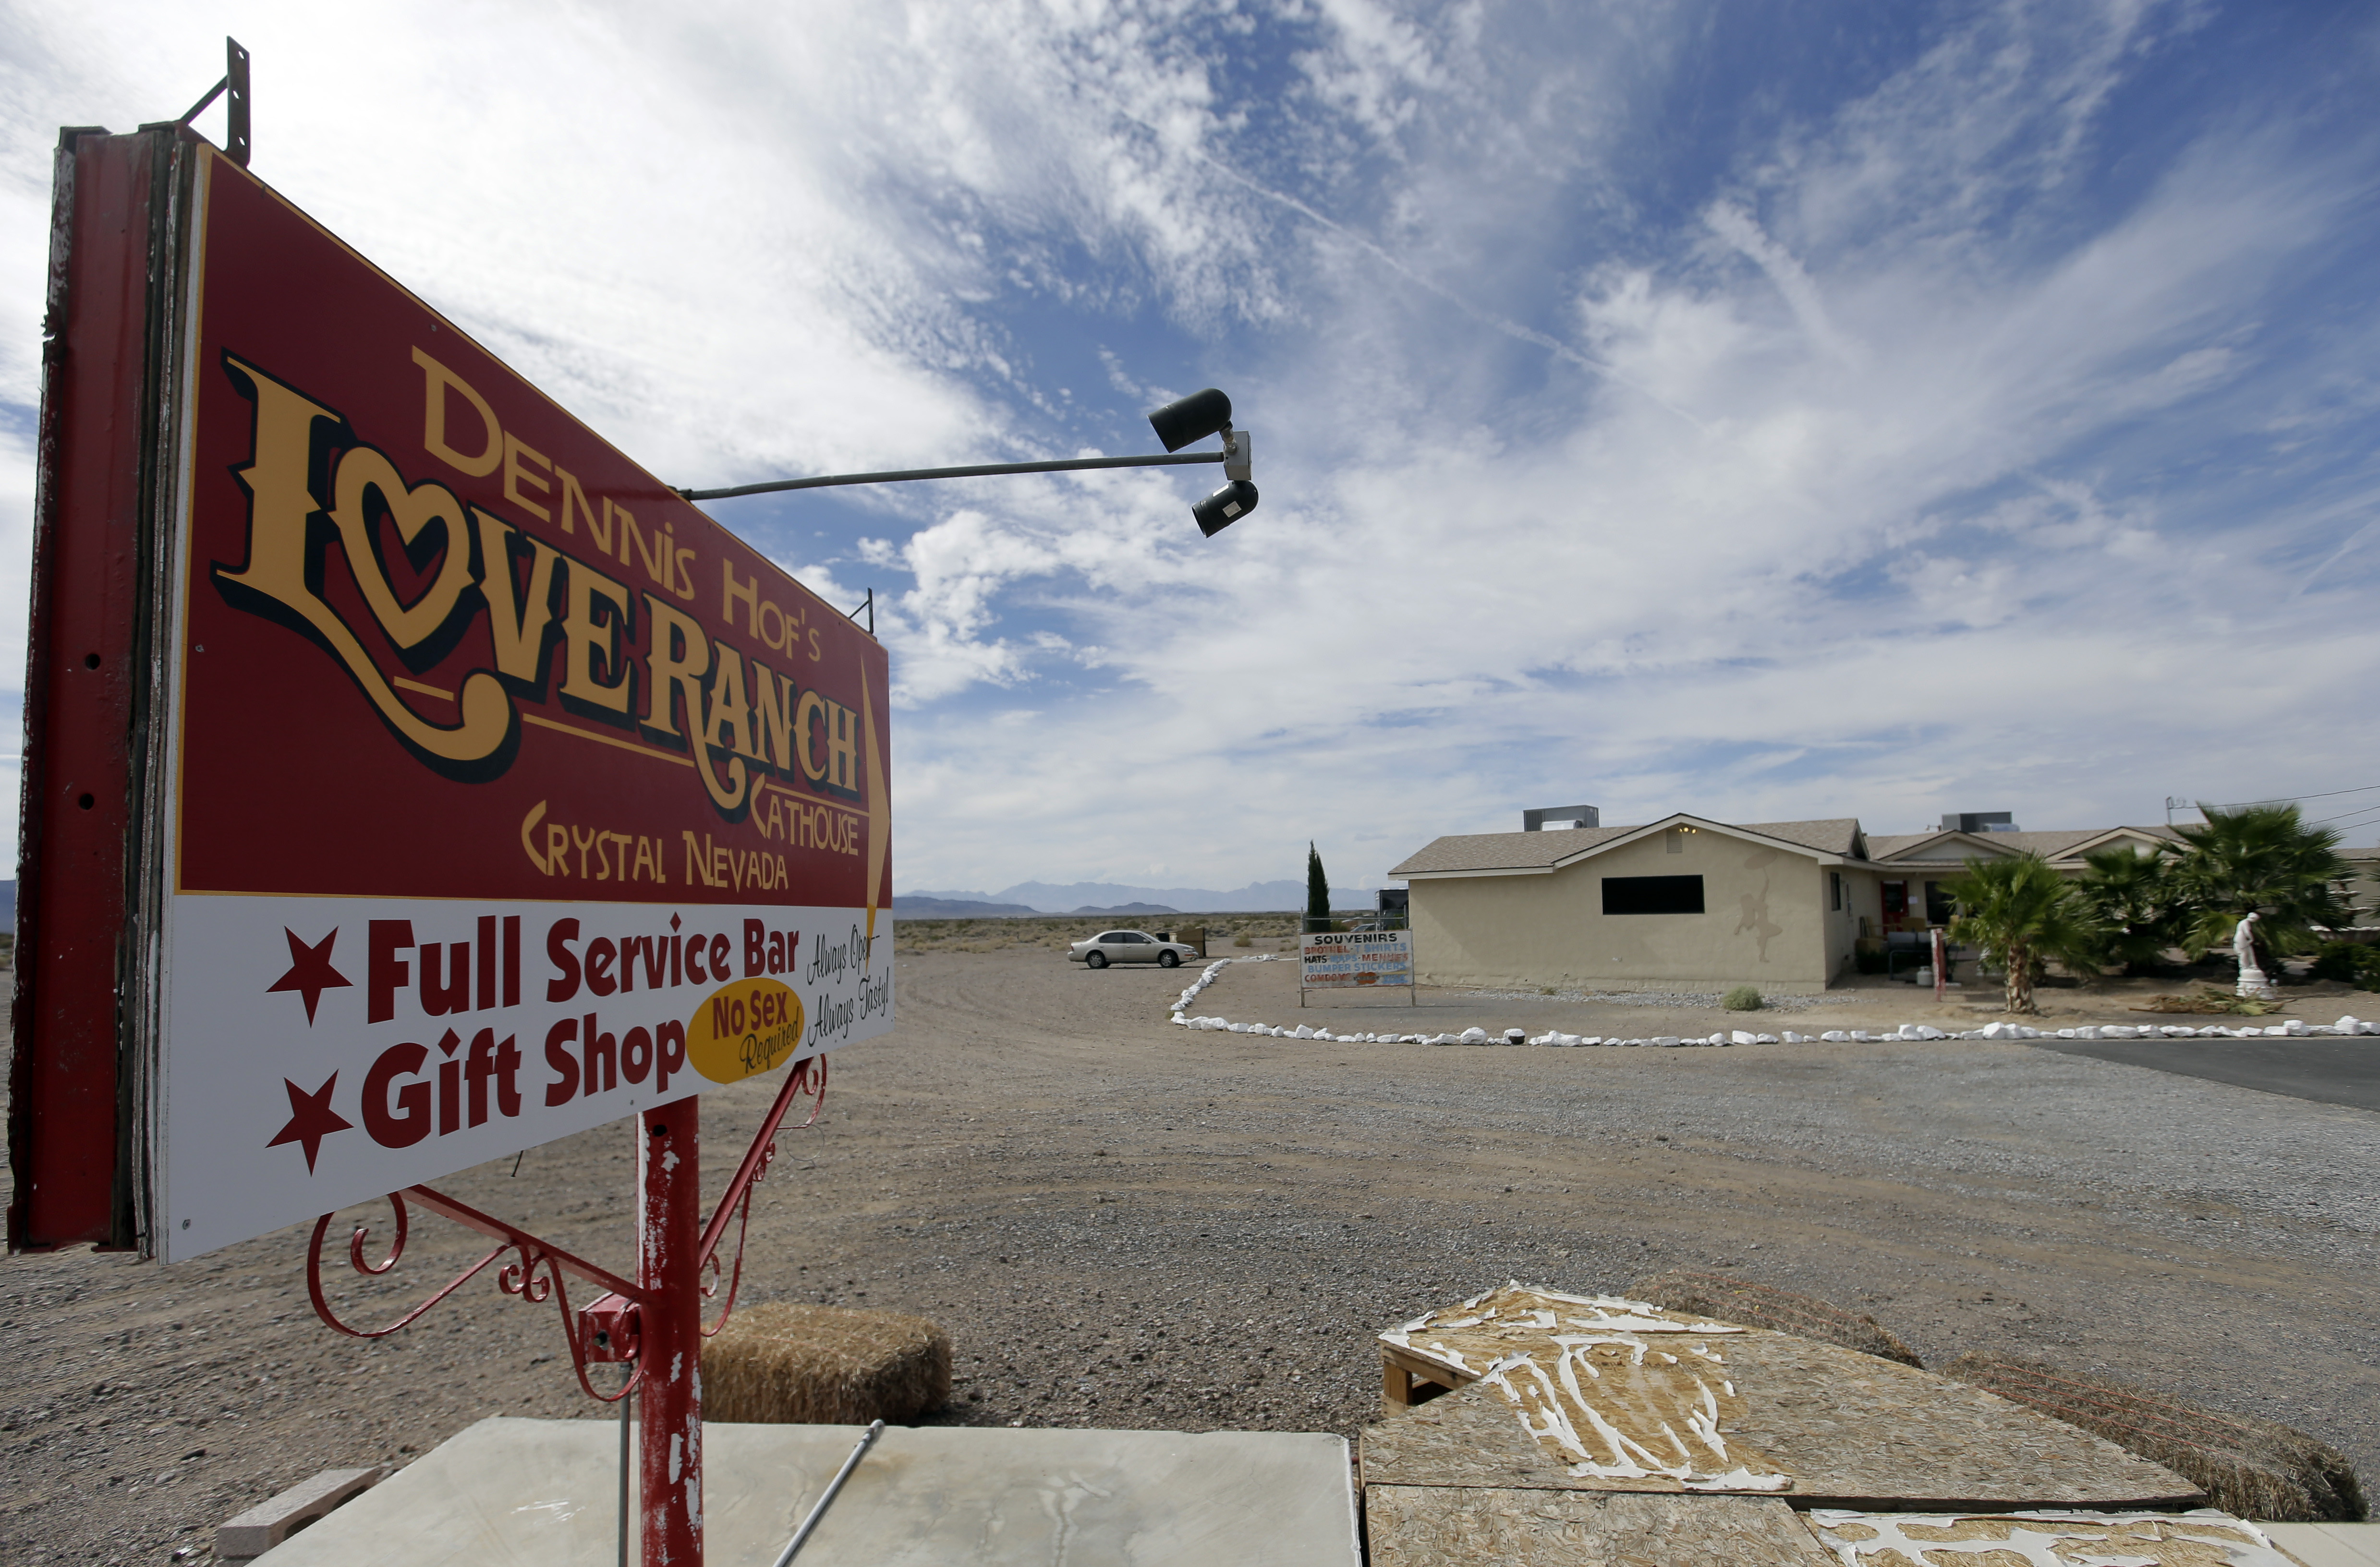 A sign advertises the Love Ranch brothel Oct. 14, 2015, in Crystal, Nev., were former NBA basketball player Lamar Odom was found unconscious the day before.